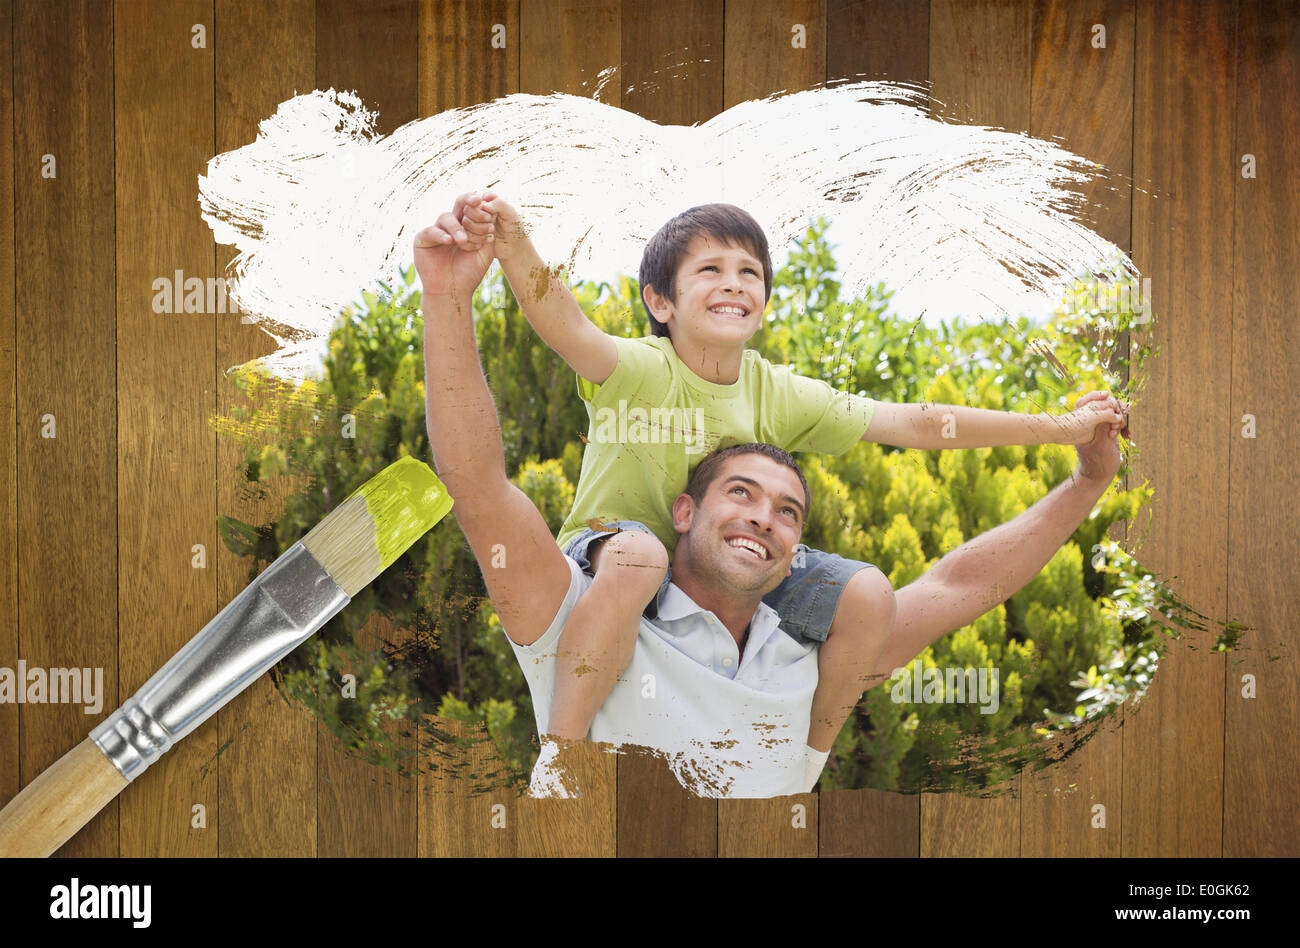 Composite image of father and son in the park - Stock Image